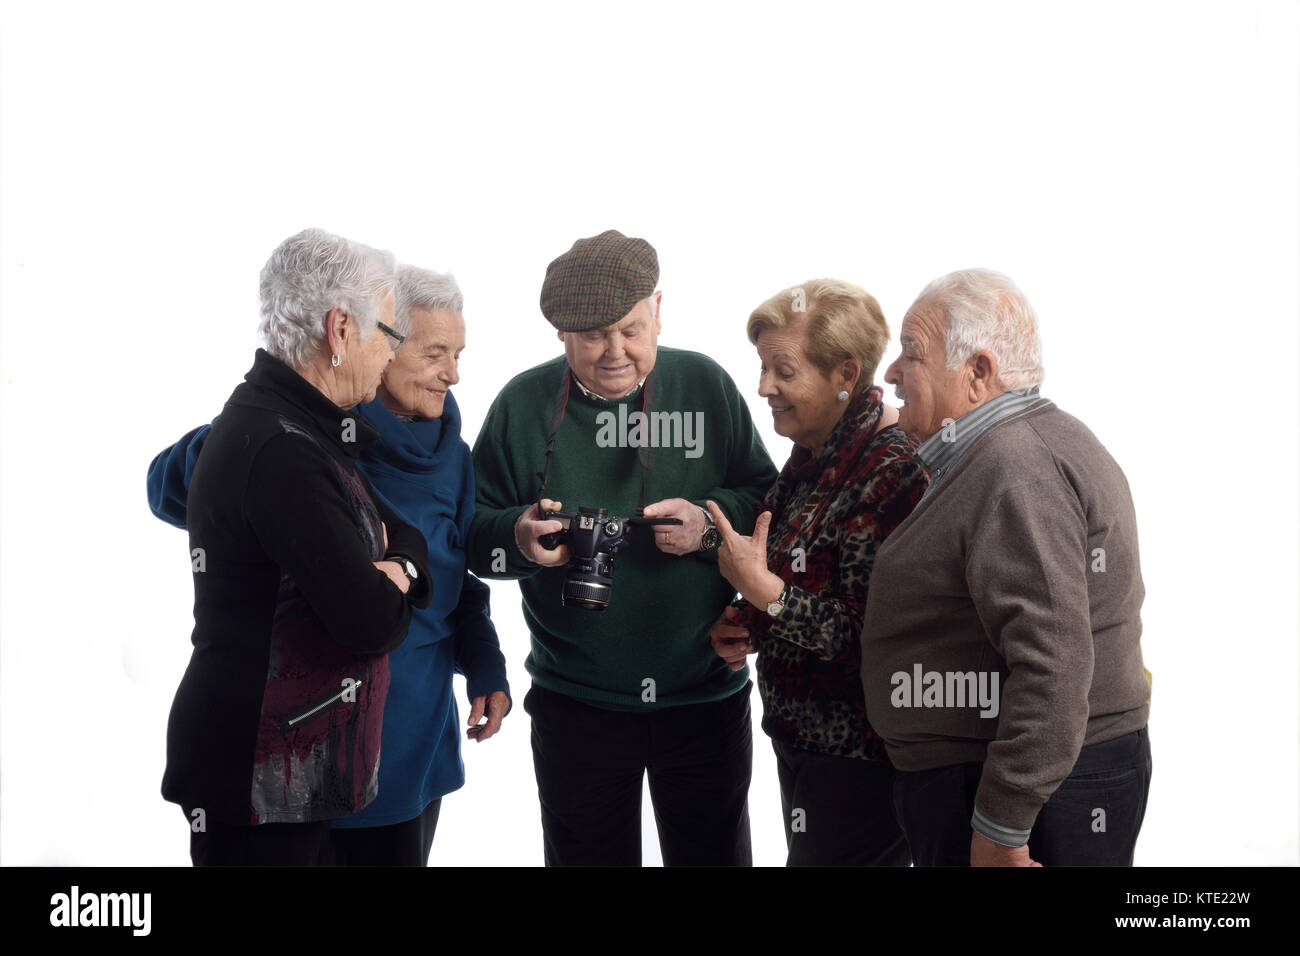 group of elders at the screen reflex camera - Stock Image